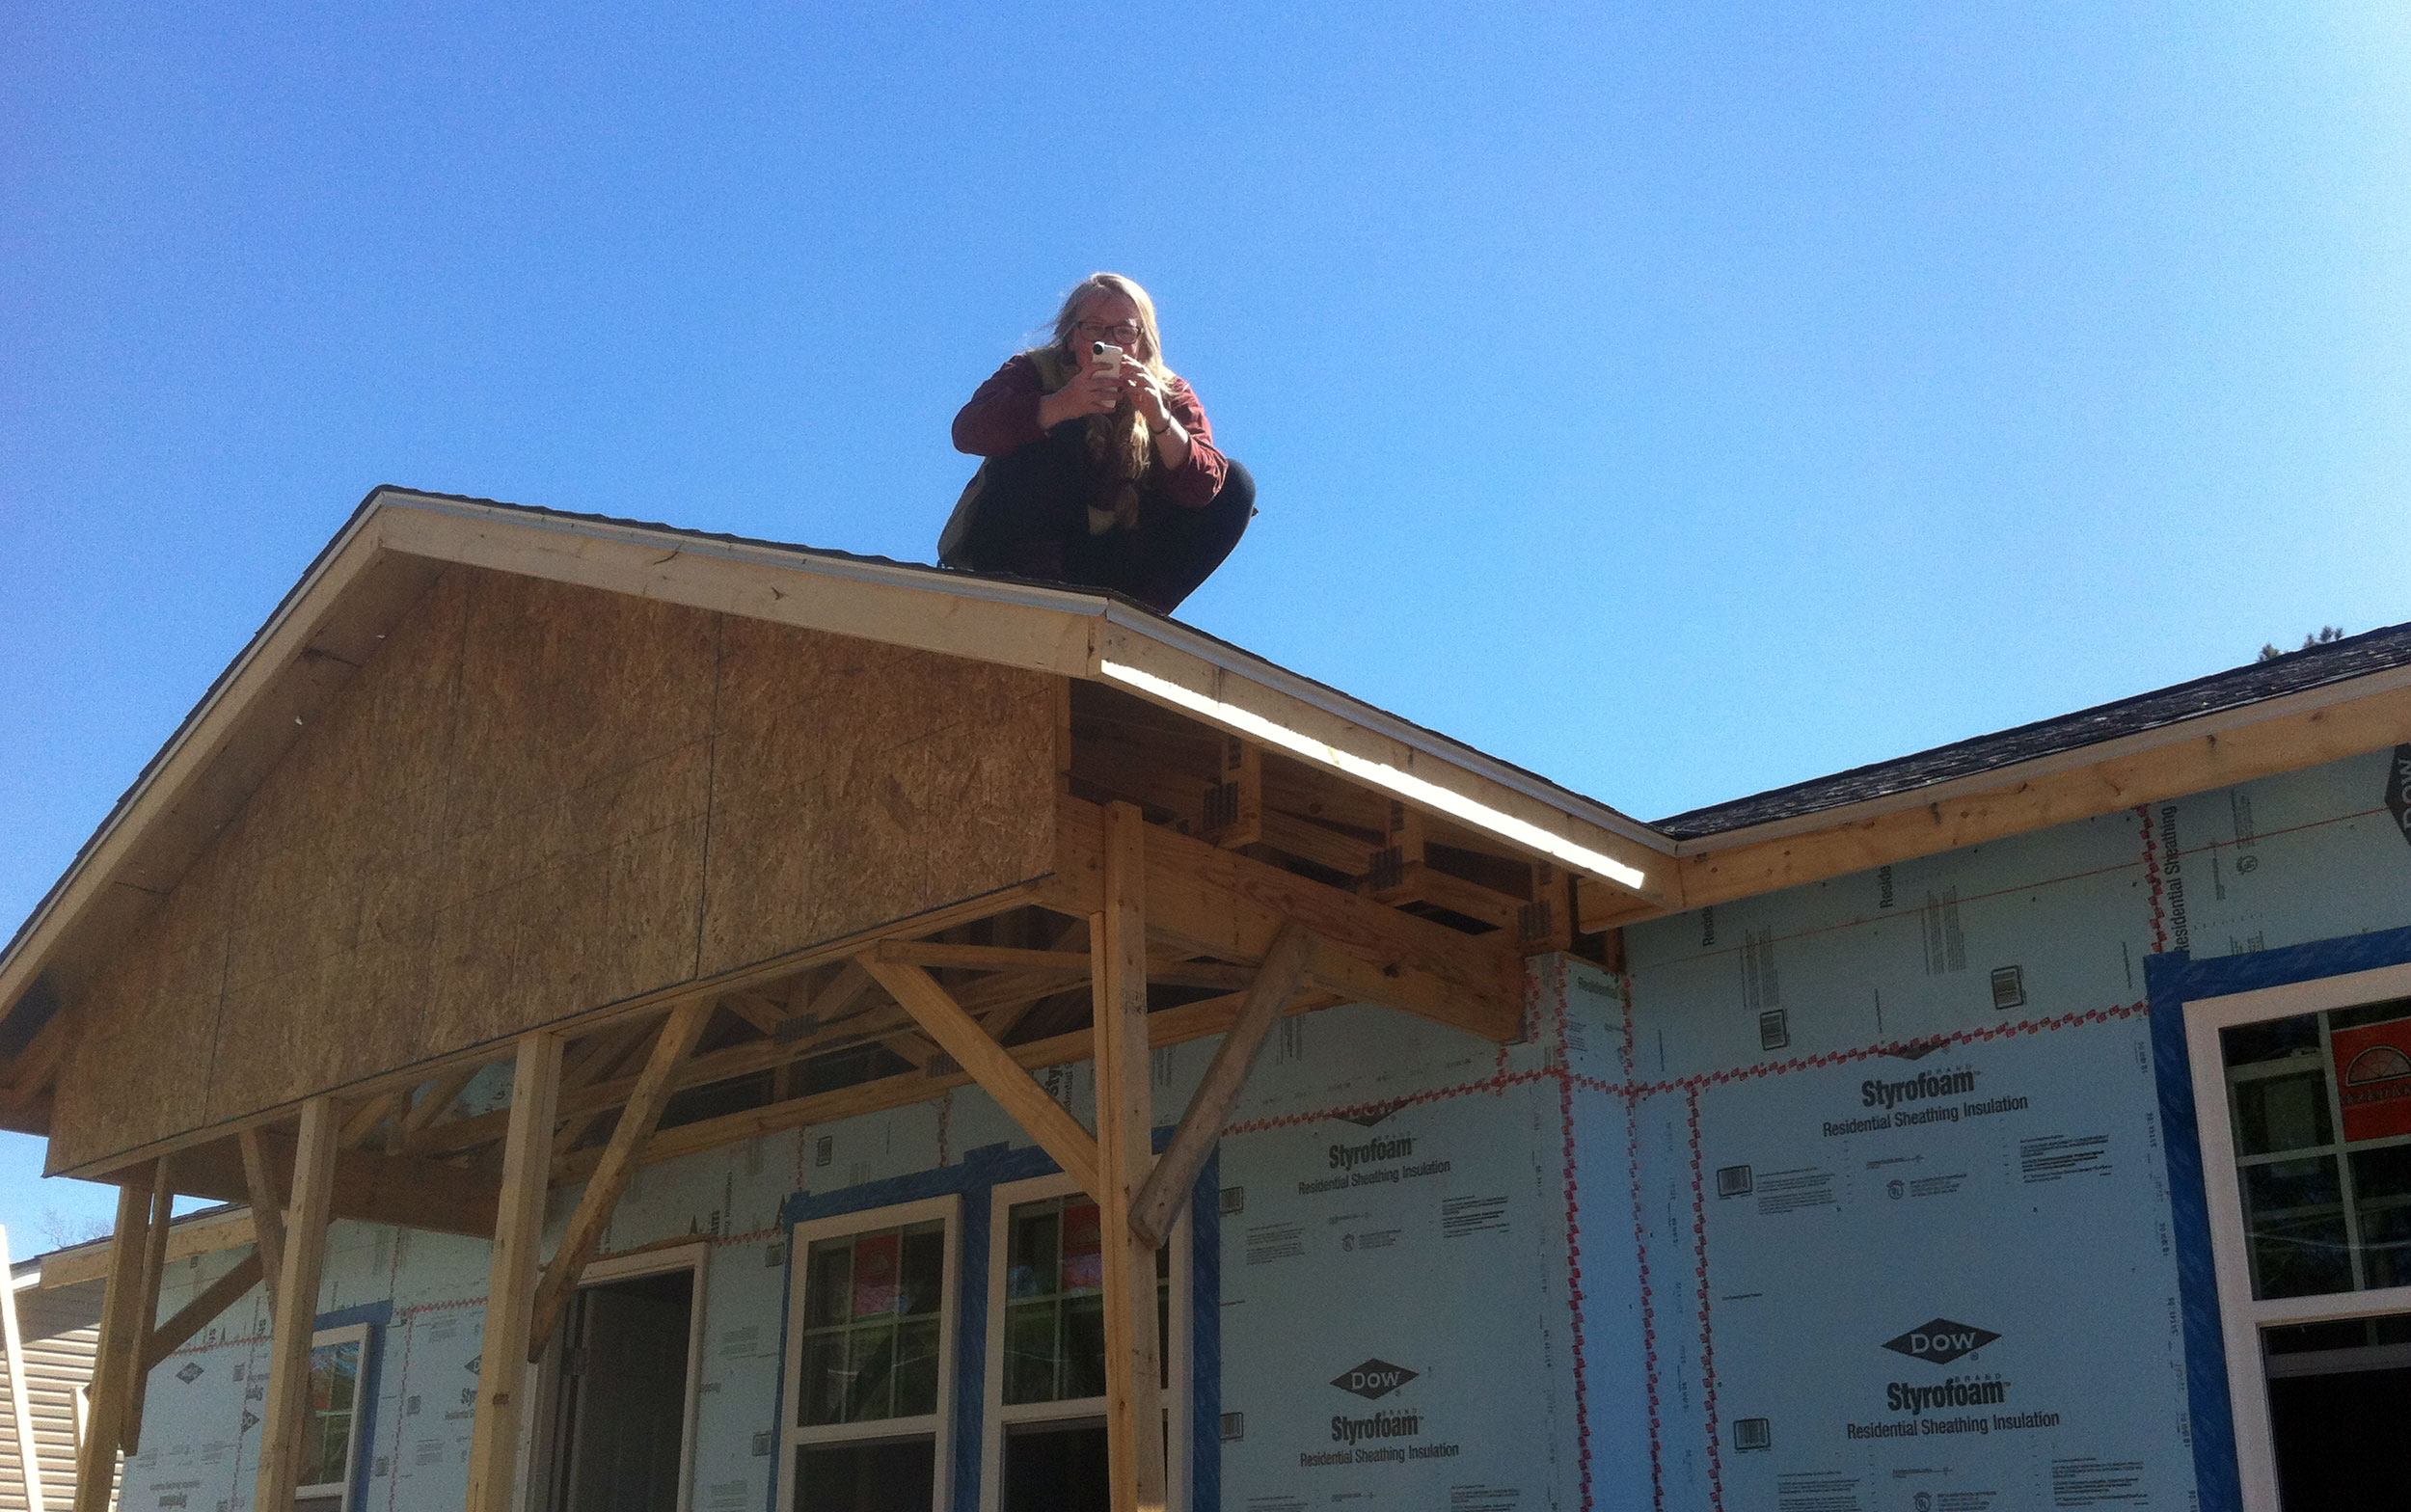 Julie Takes A Final Photo From The Finished Roof. Note Windows And Doors.  They